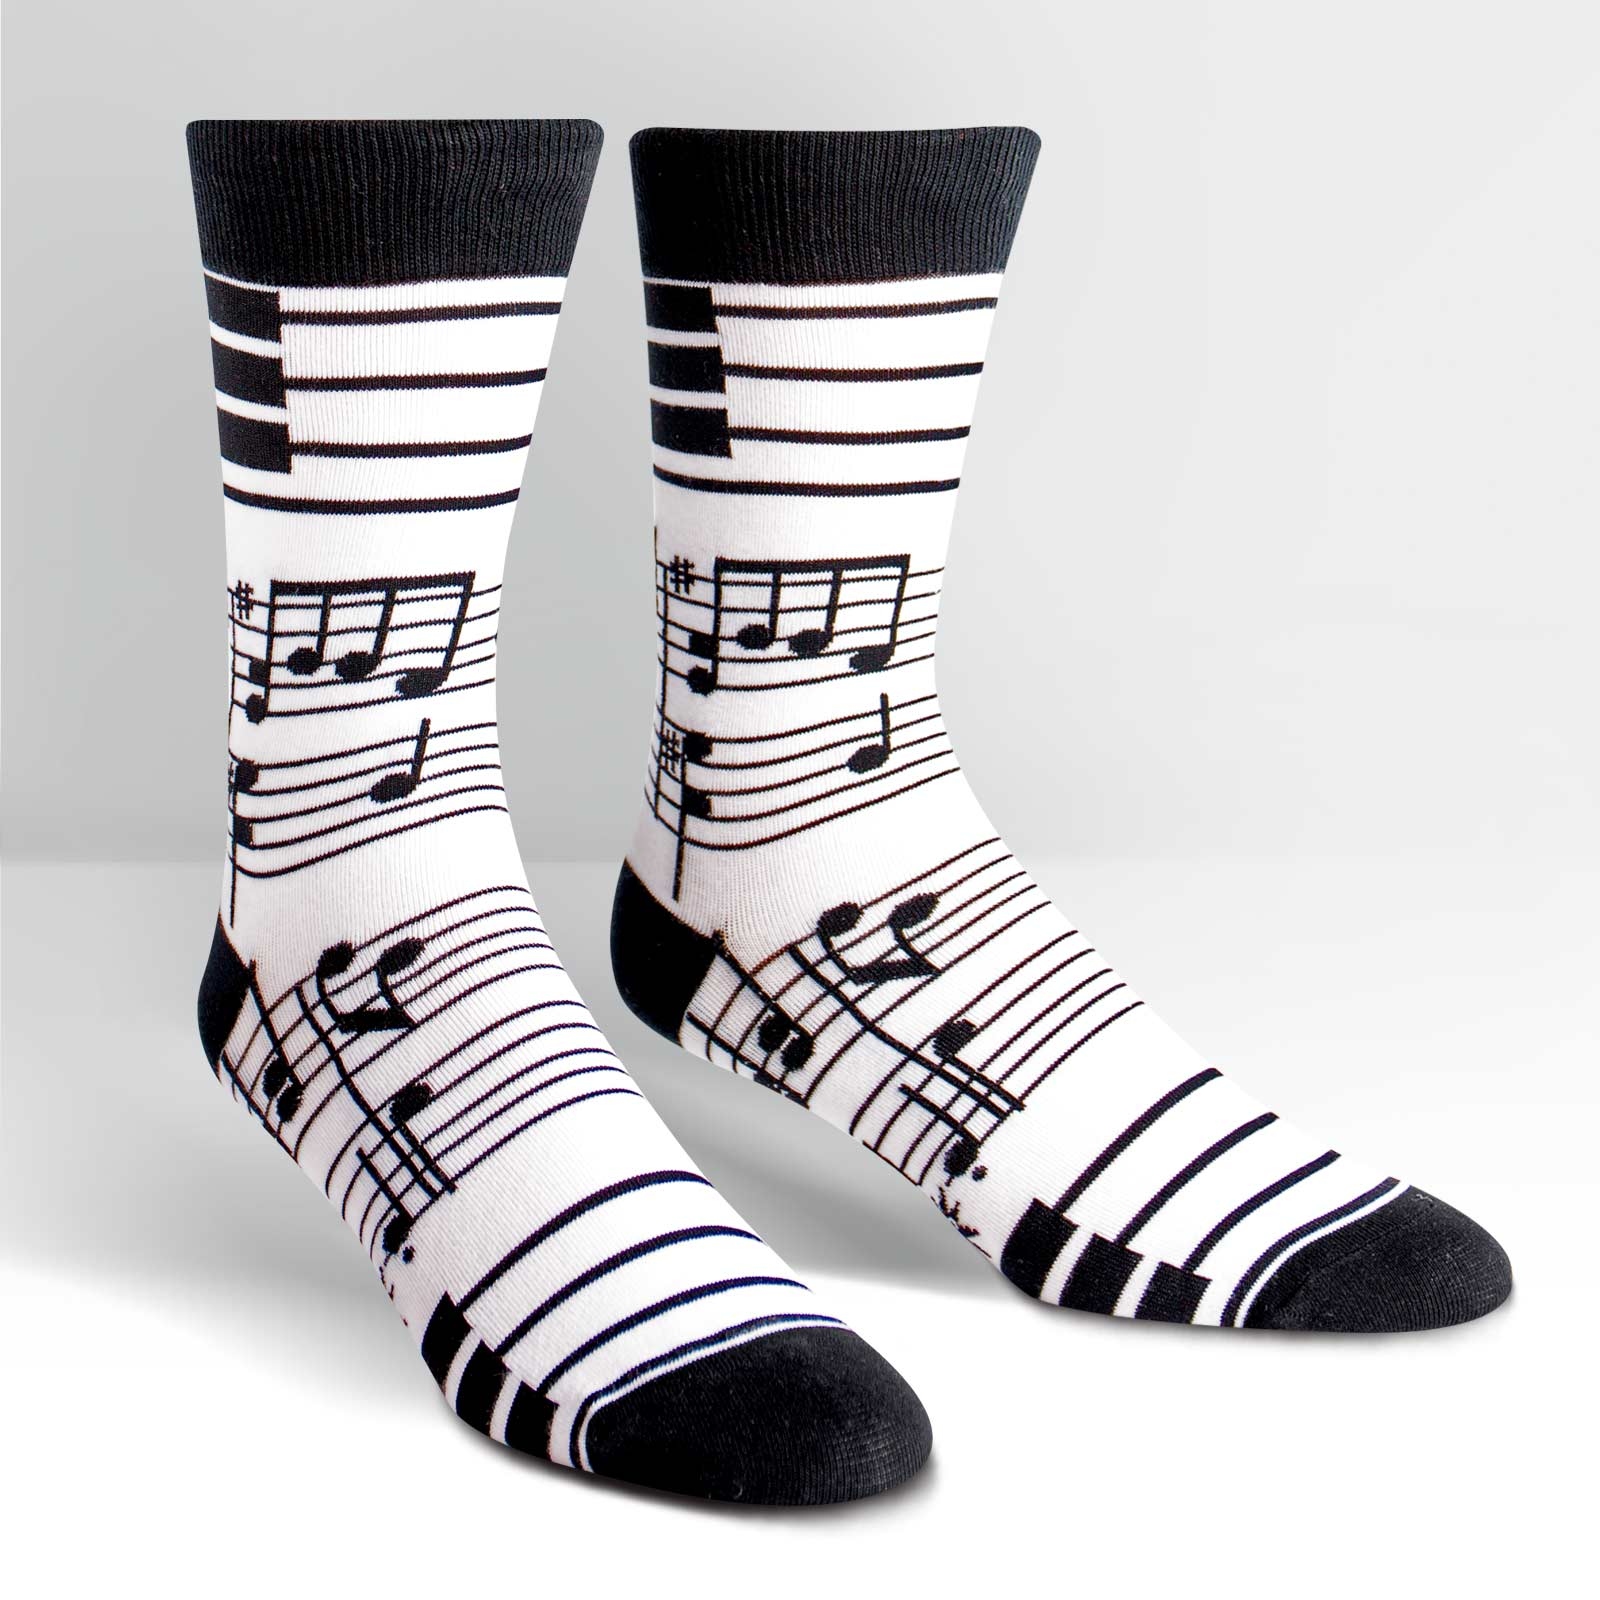 Sock It To Me Socks - Men's Crew - Footnotes